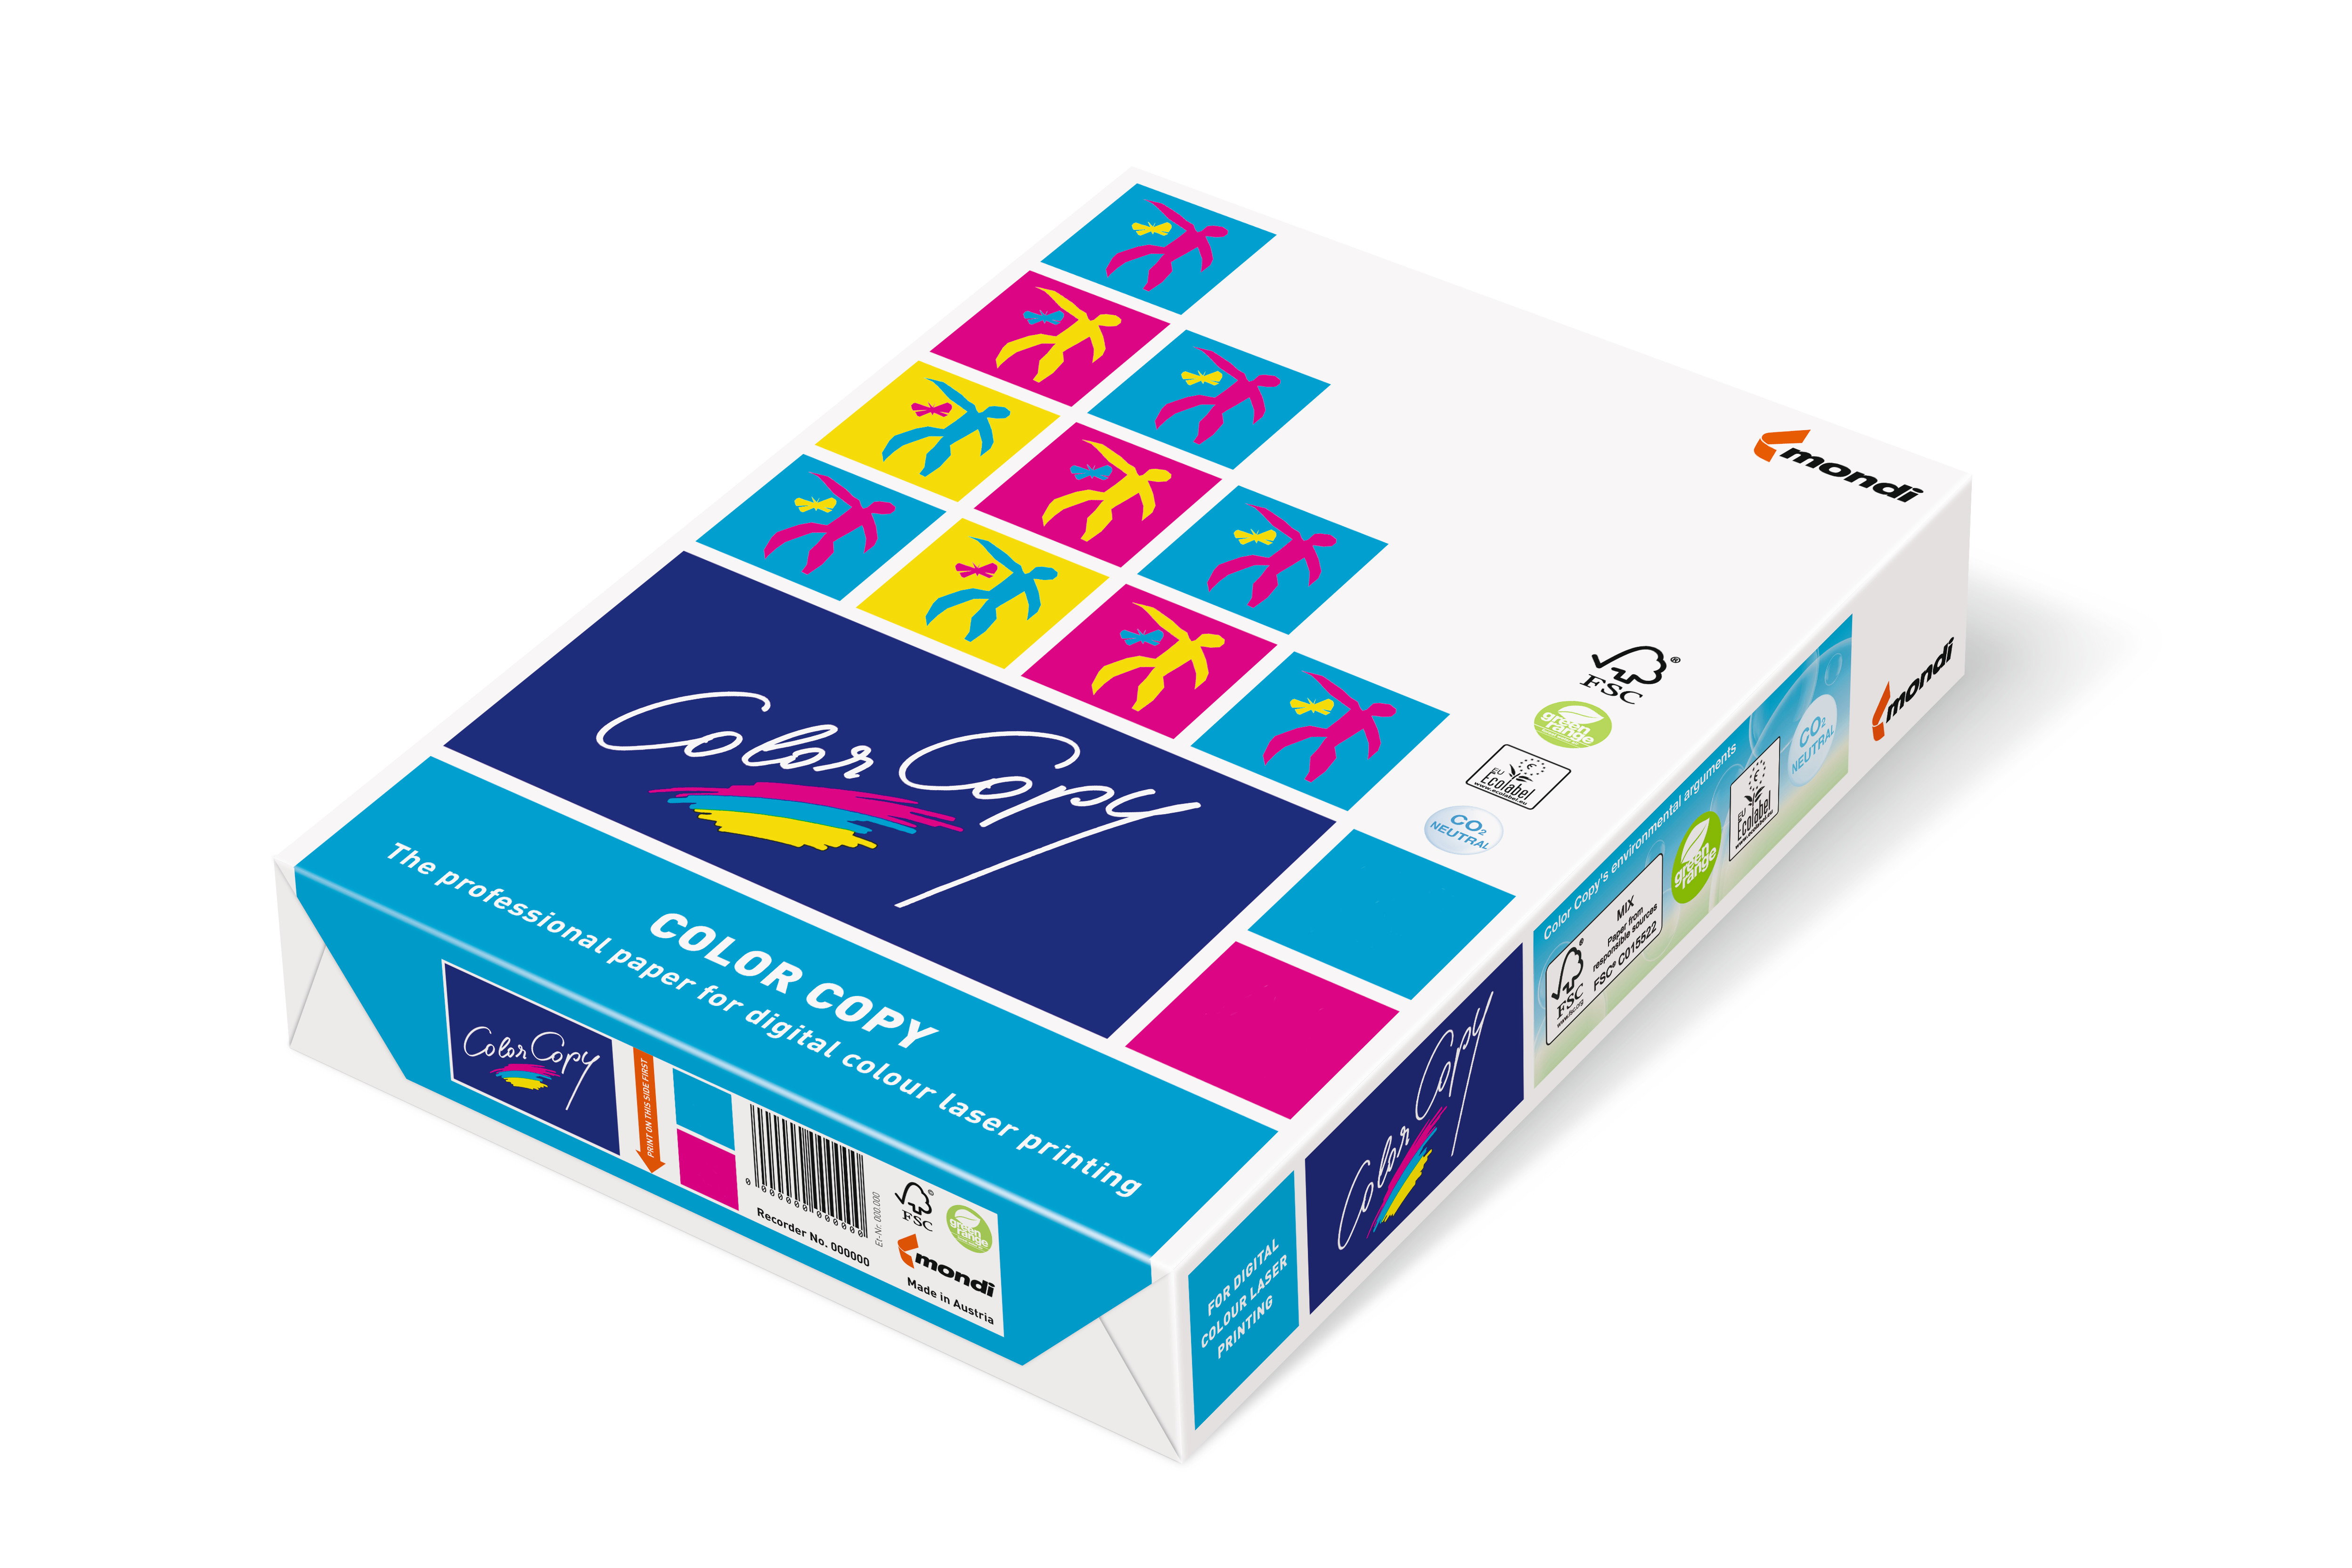 Mondi Color Copy  Papier 250g/m² DIN-A3+ 250 Blatt